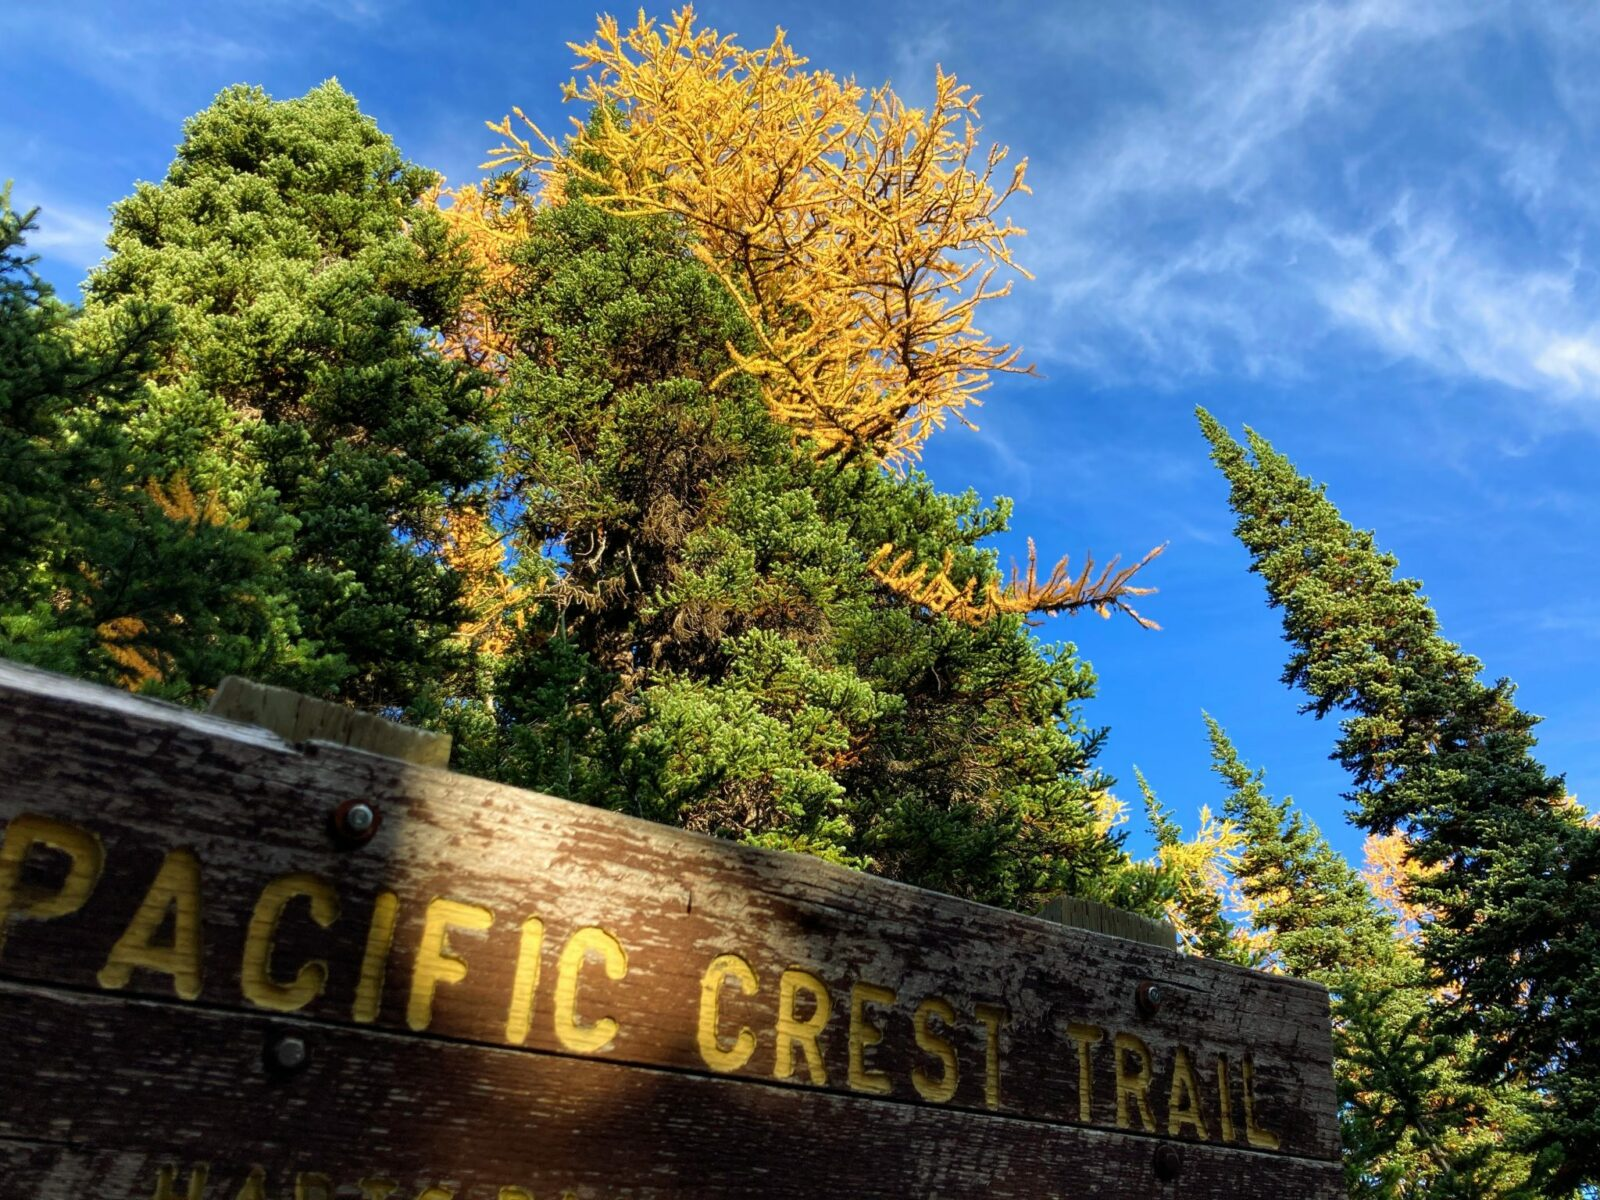 A weathered Pacific Crest Trail sign in the foreground against dark green evergreen trees and a golden larch tree against a blue sky